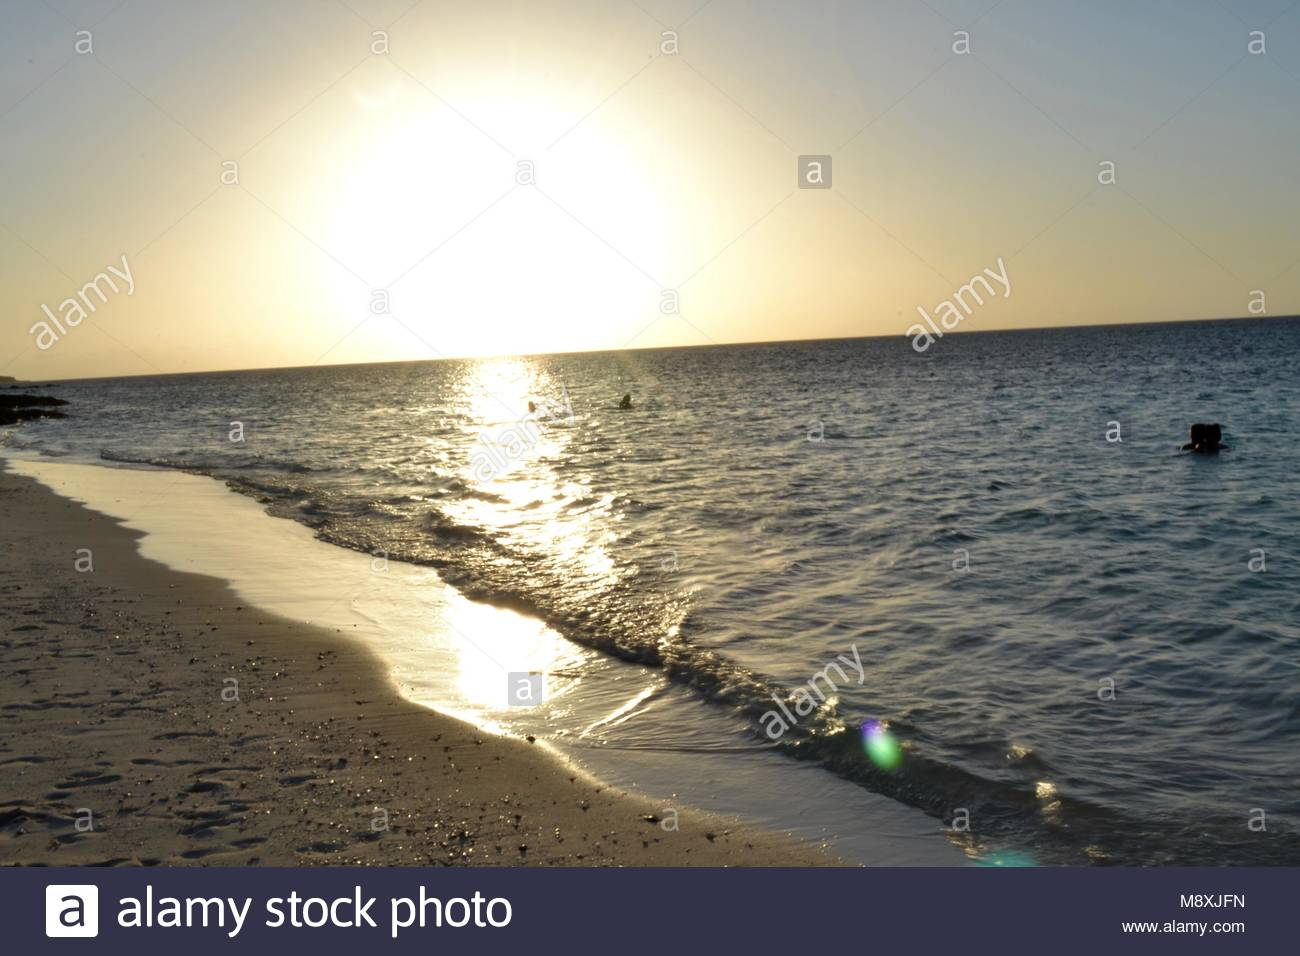 this is a photo of the sun setting over the ocean with waves, sand and out lines of people. - Stock Image